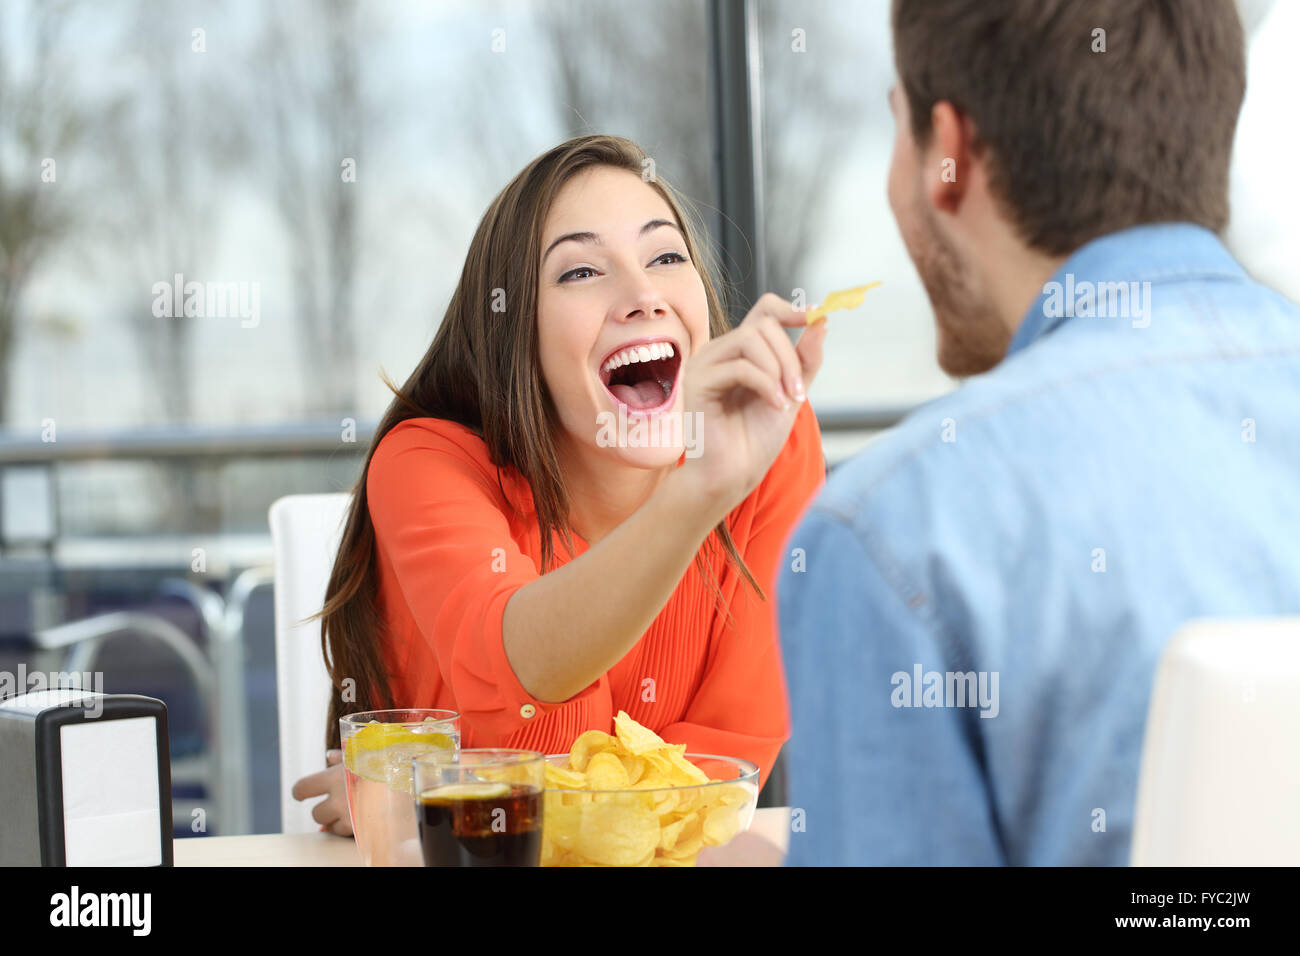 Playful couple eating chip potatoes and joking looking each other in a date in a coffee shop - Stock Image